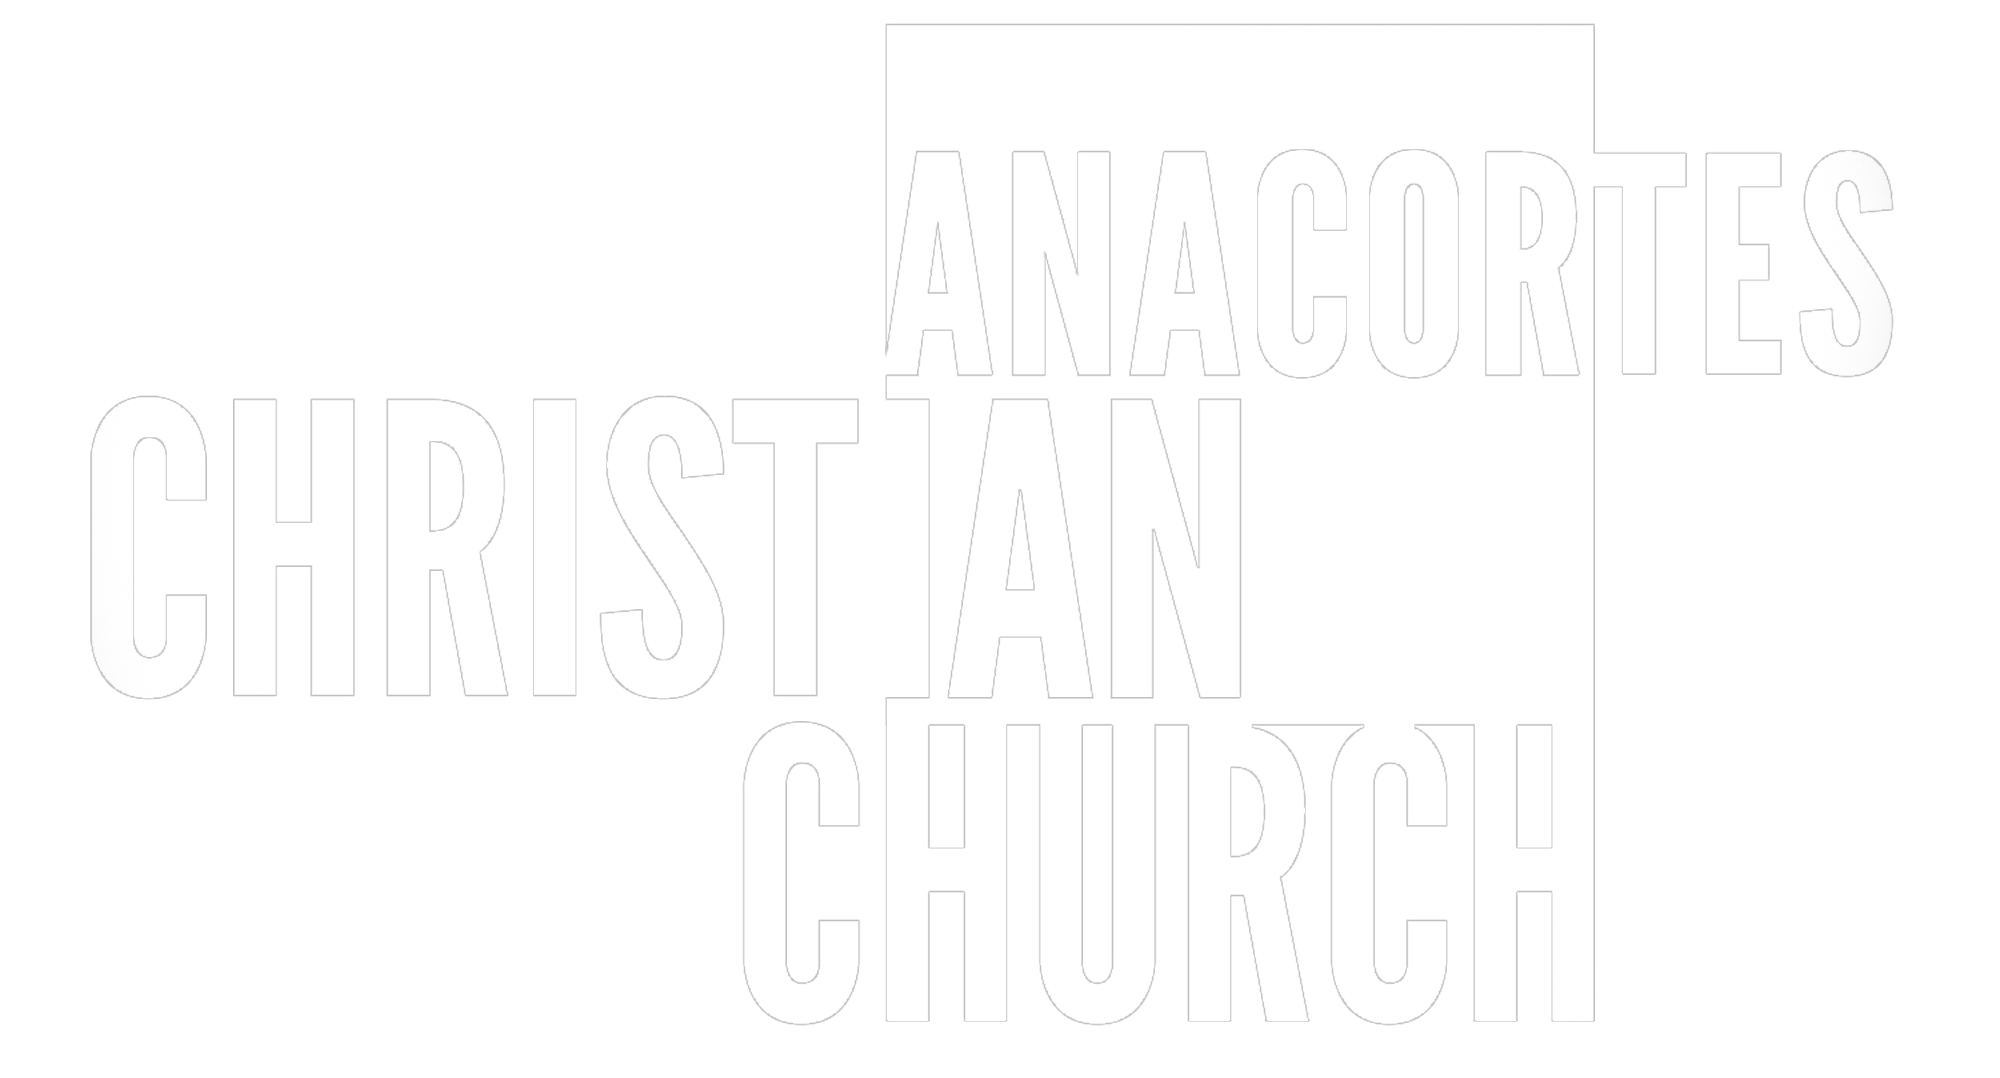 Anacortes Christian Church